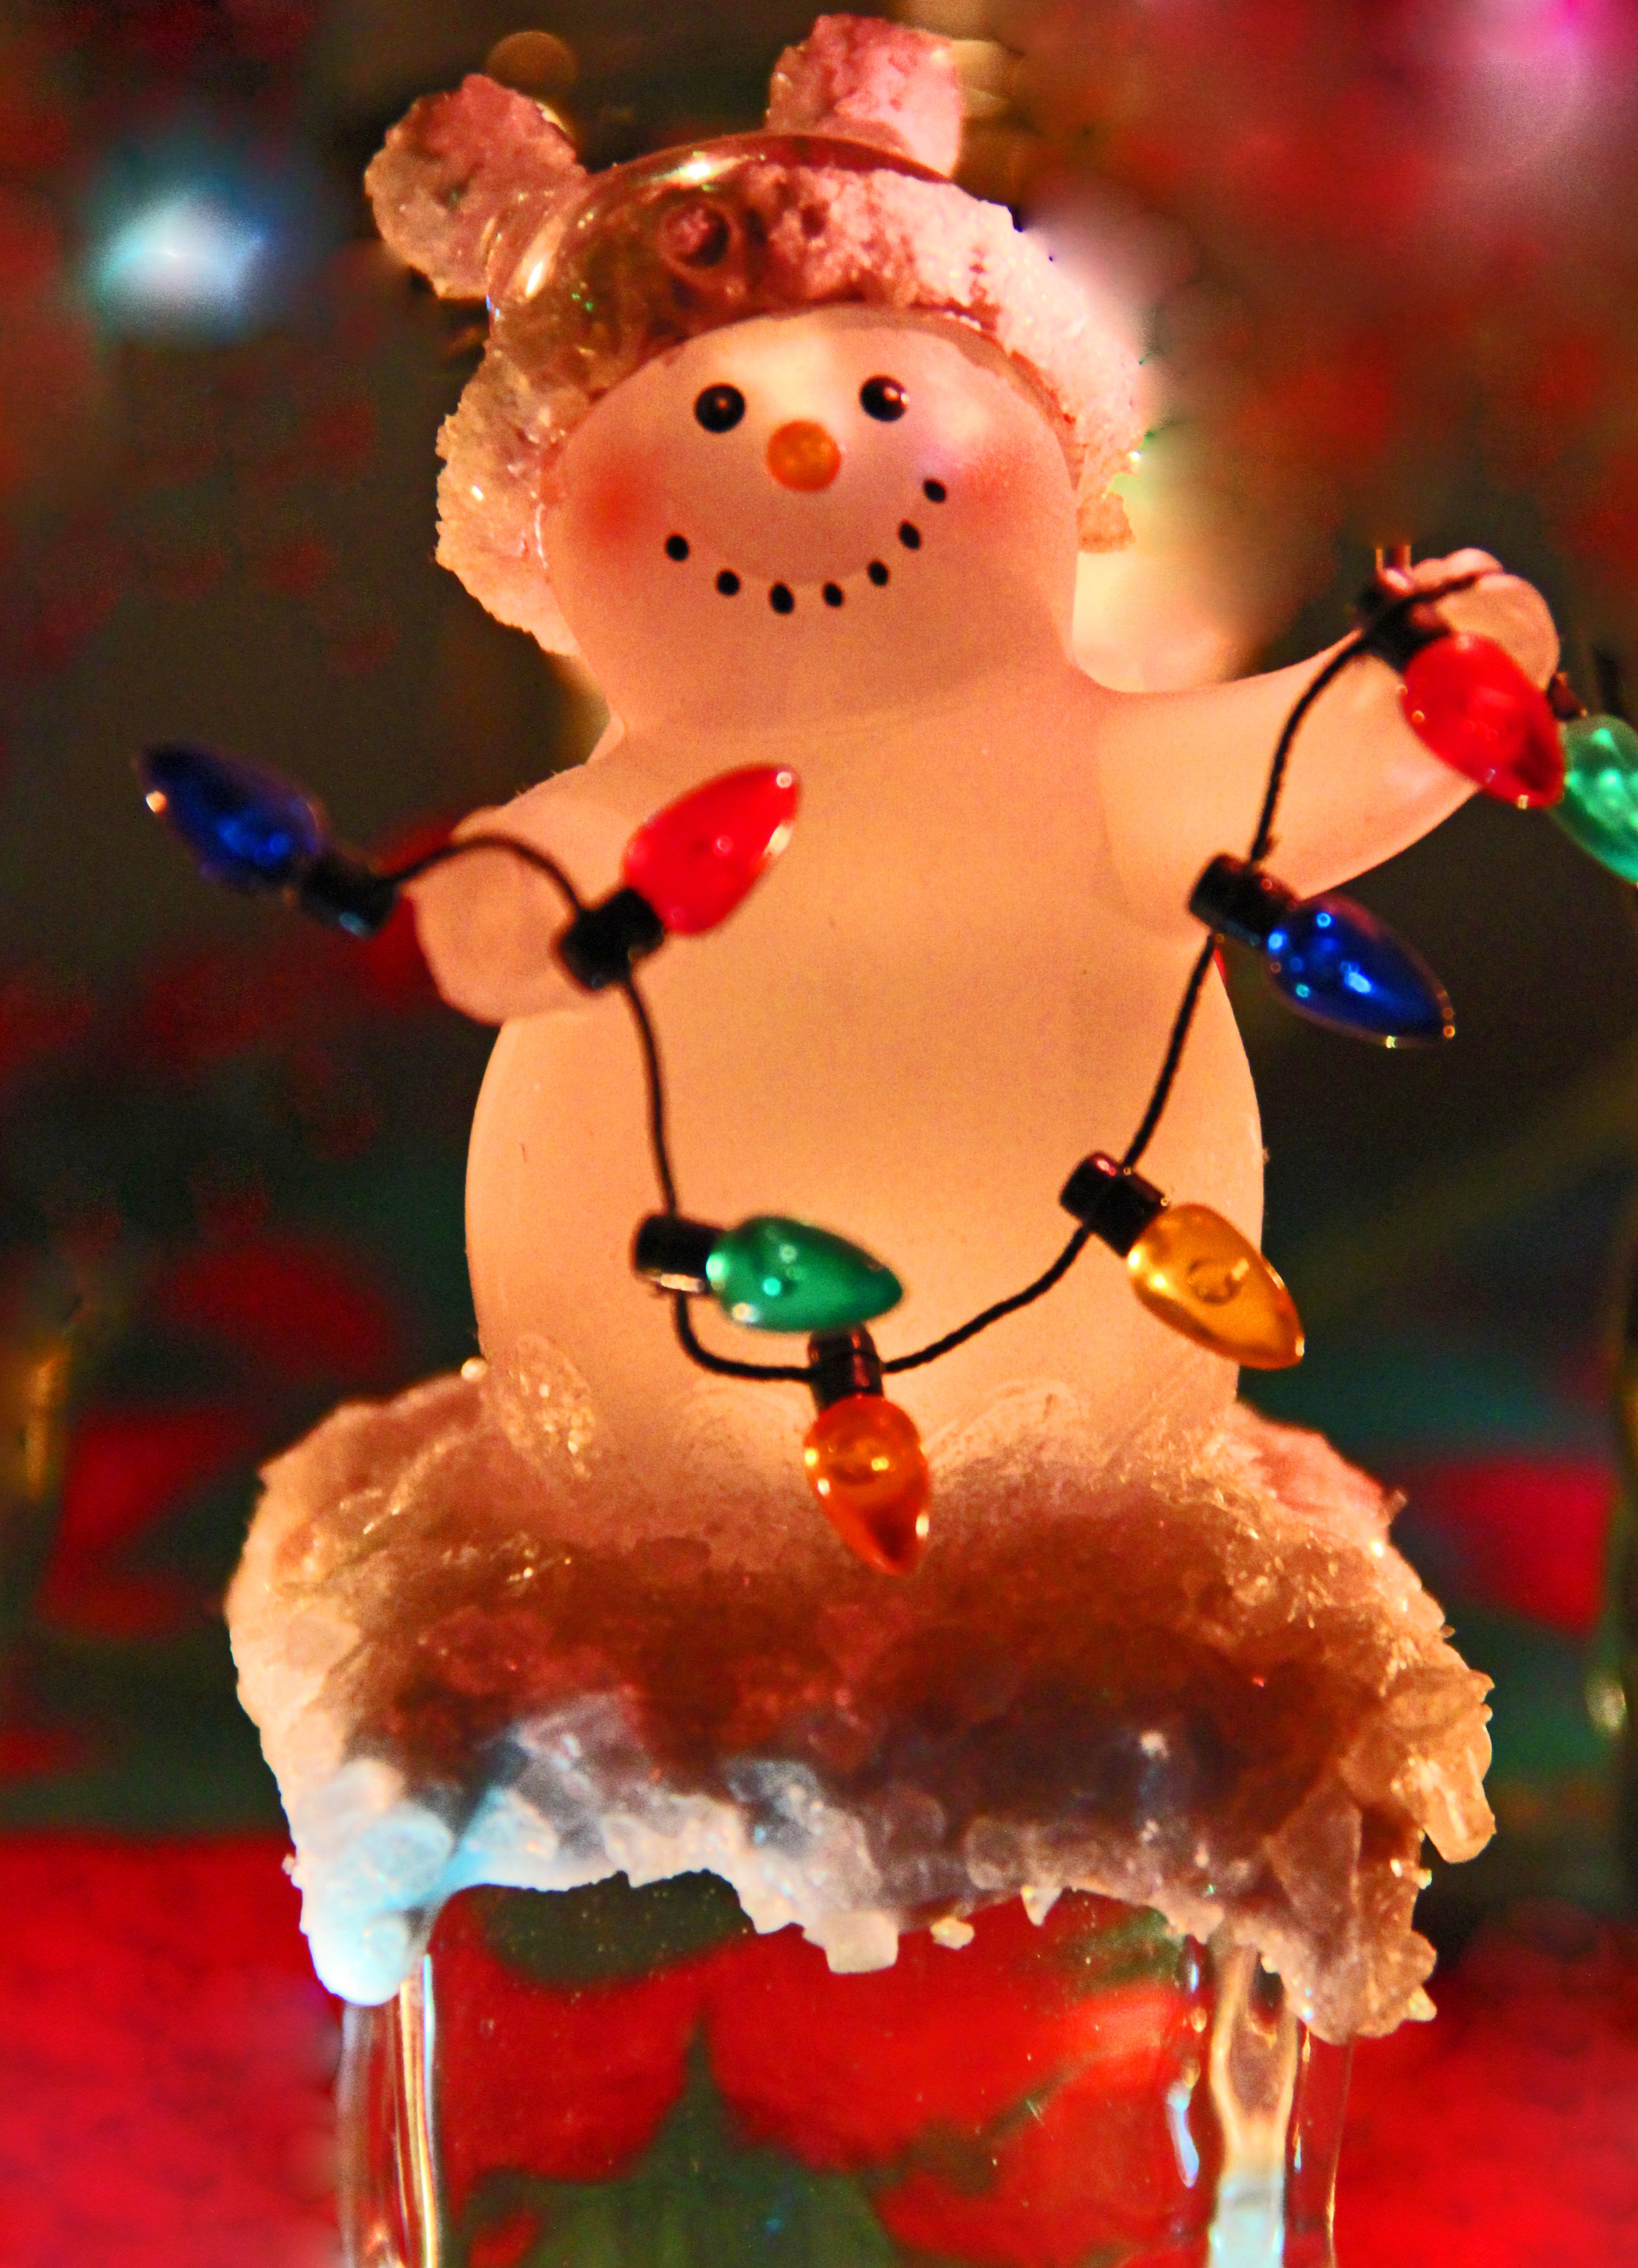 Snowman with lights.jpg